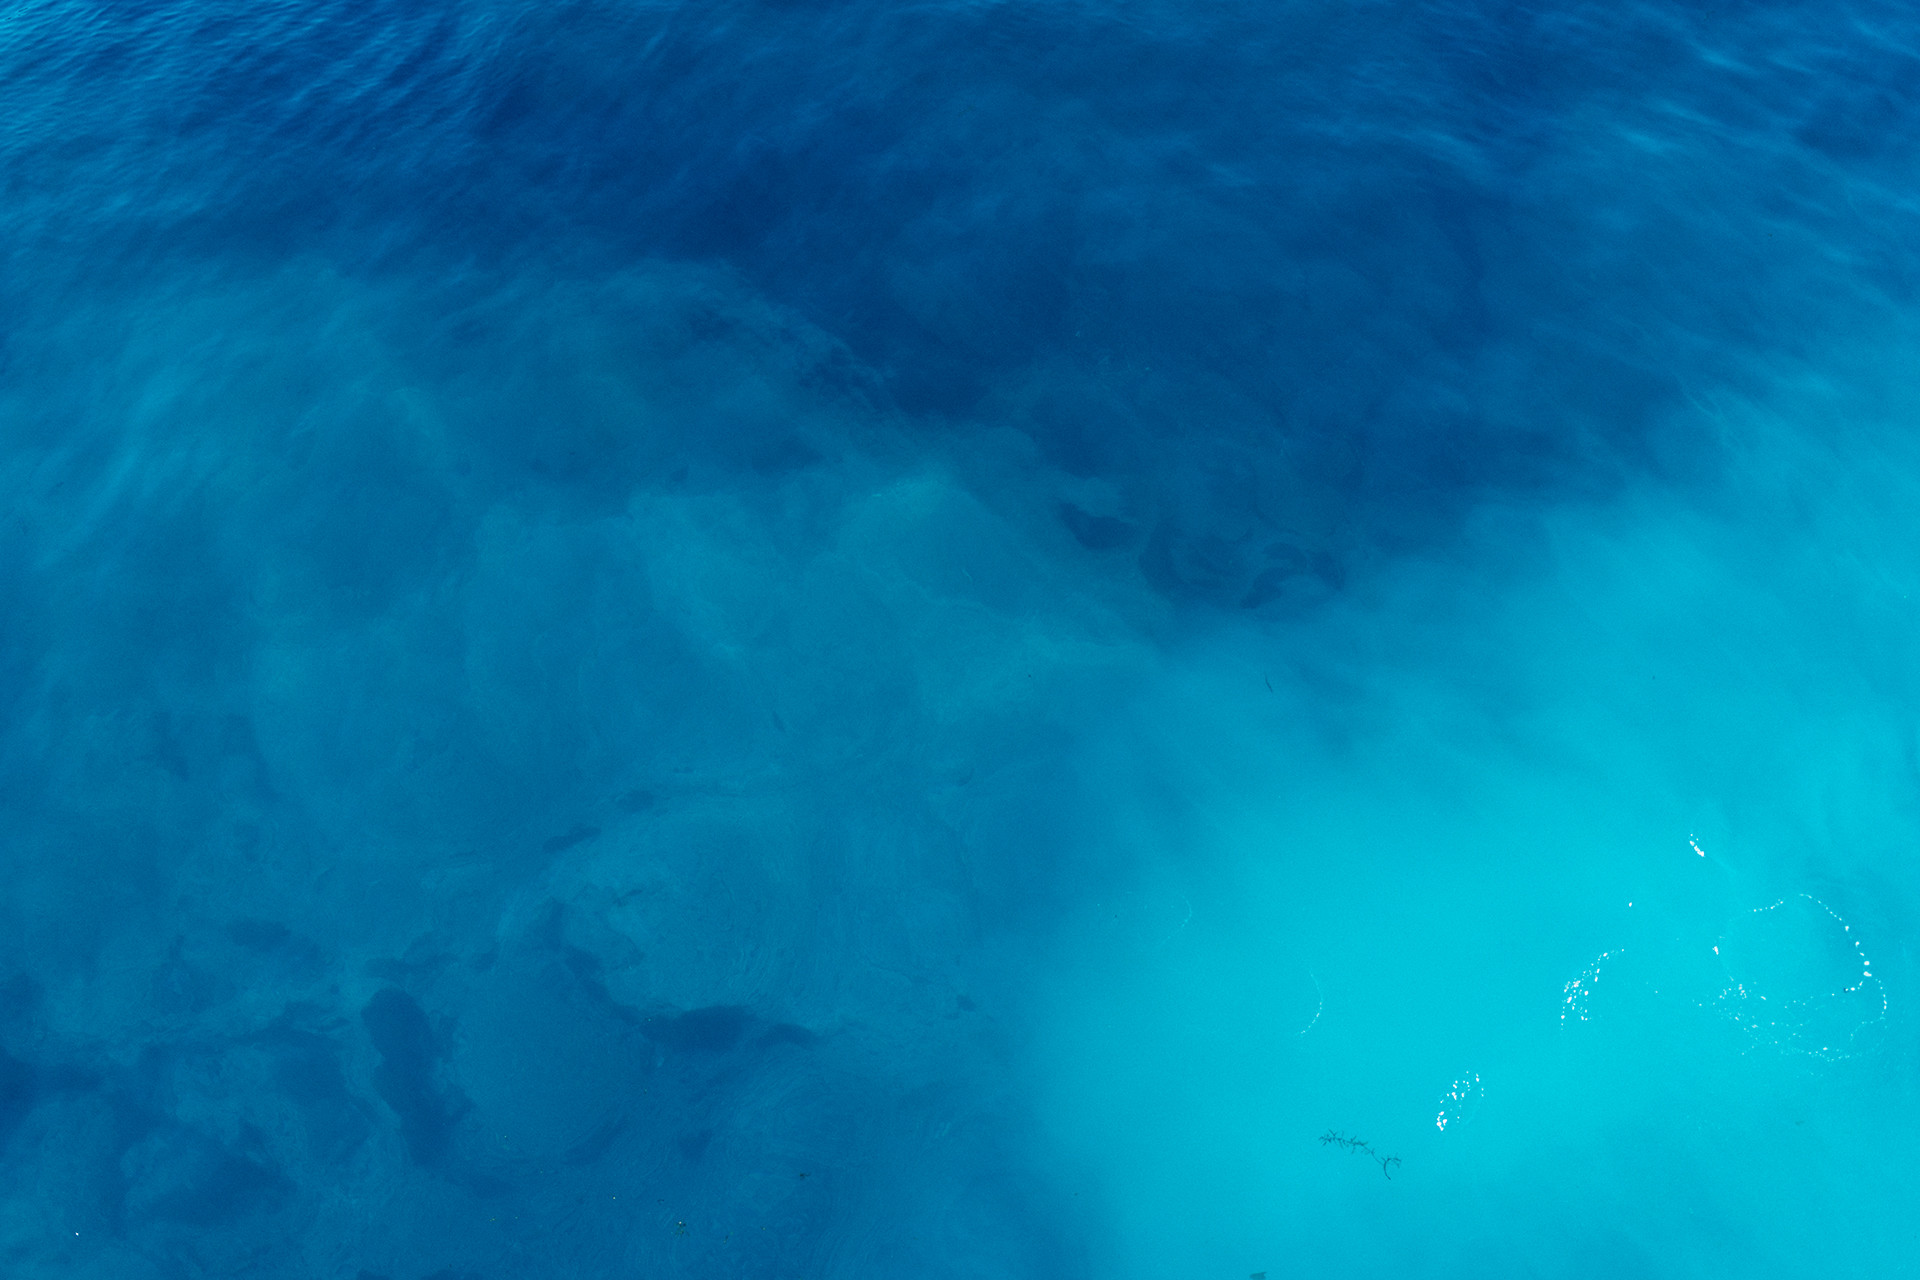 Free stock photo of water, blue, ocean